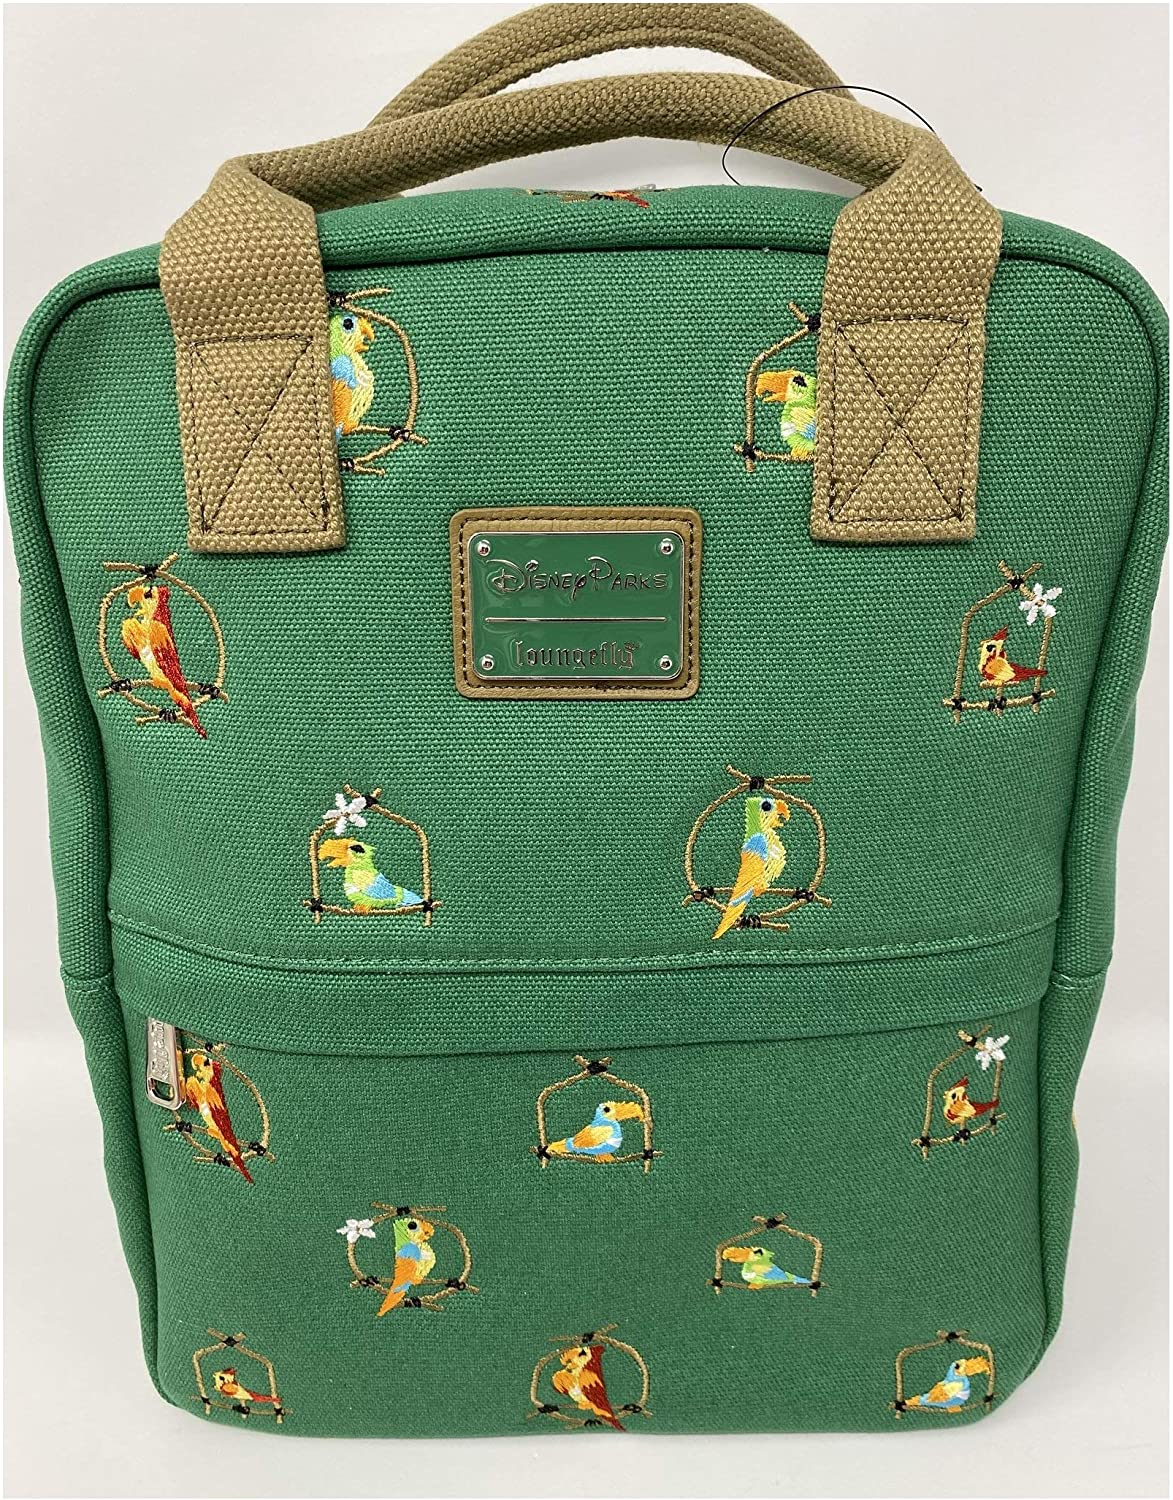 Disney Park Loungefly Tiki Room Backpack